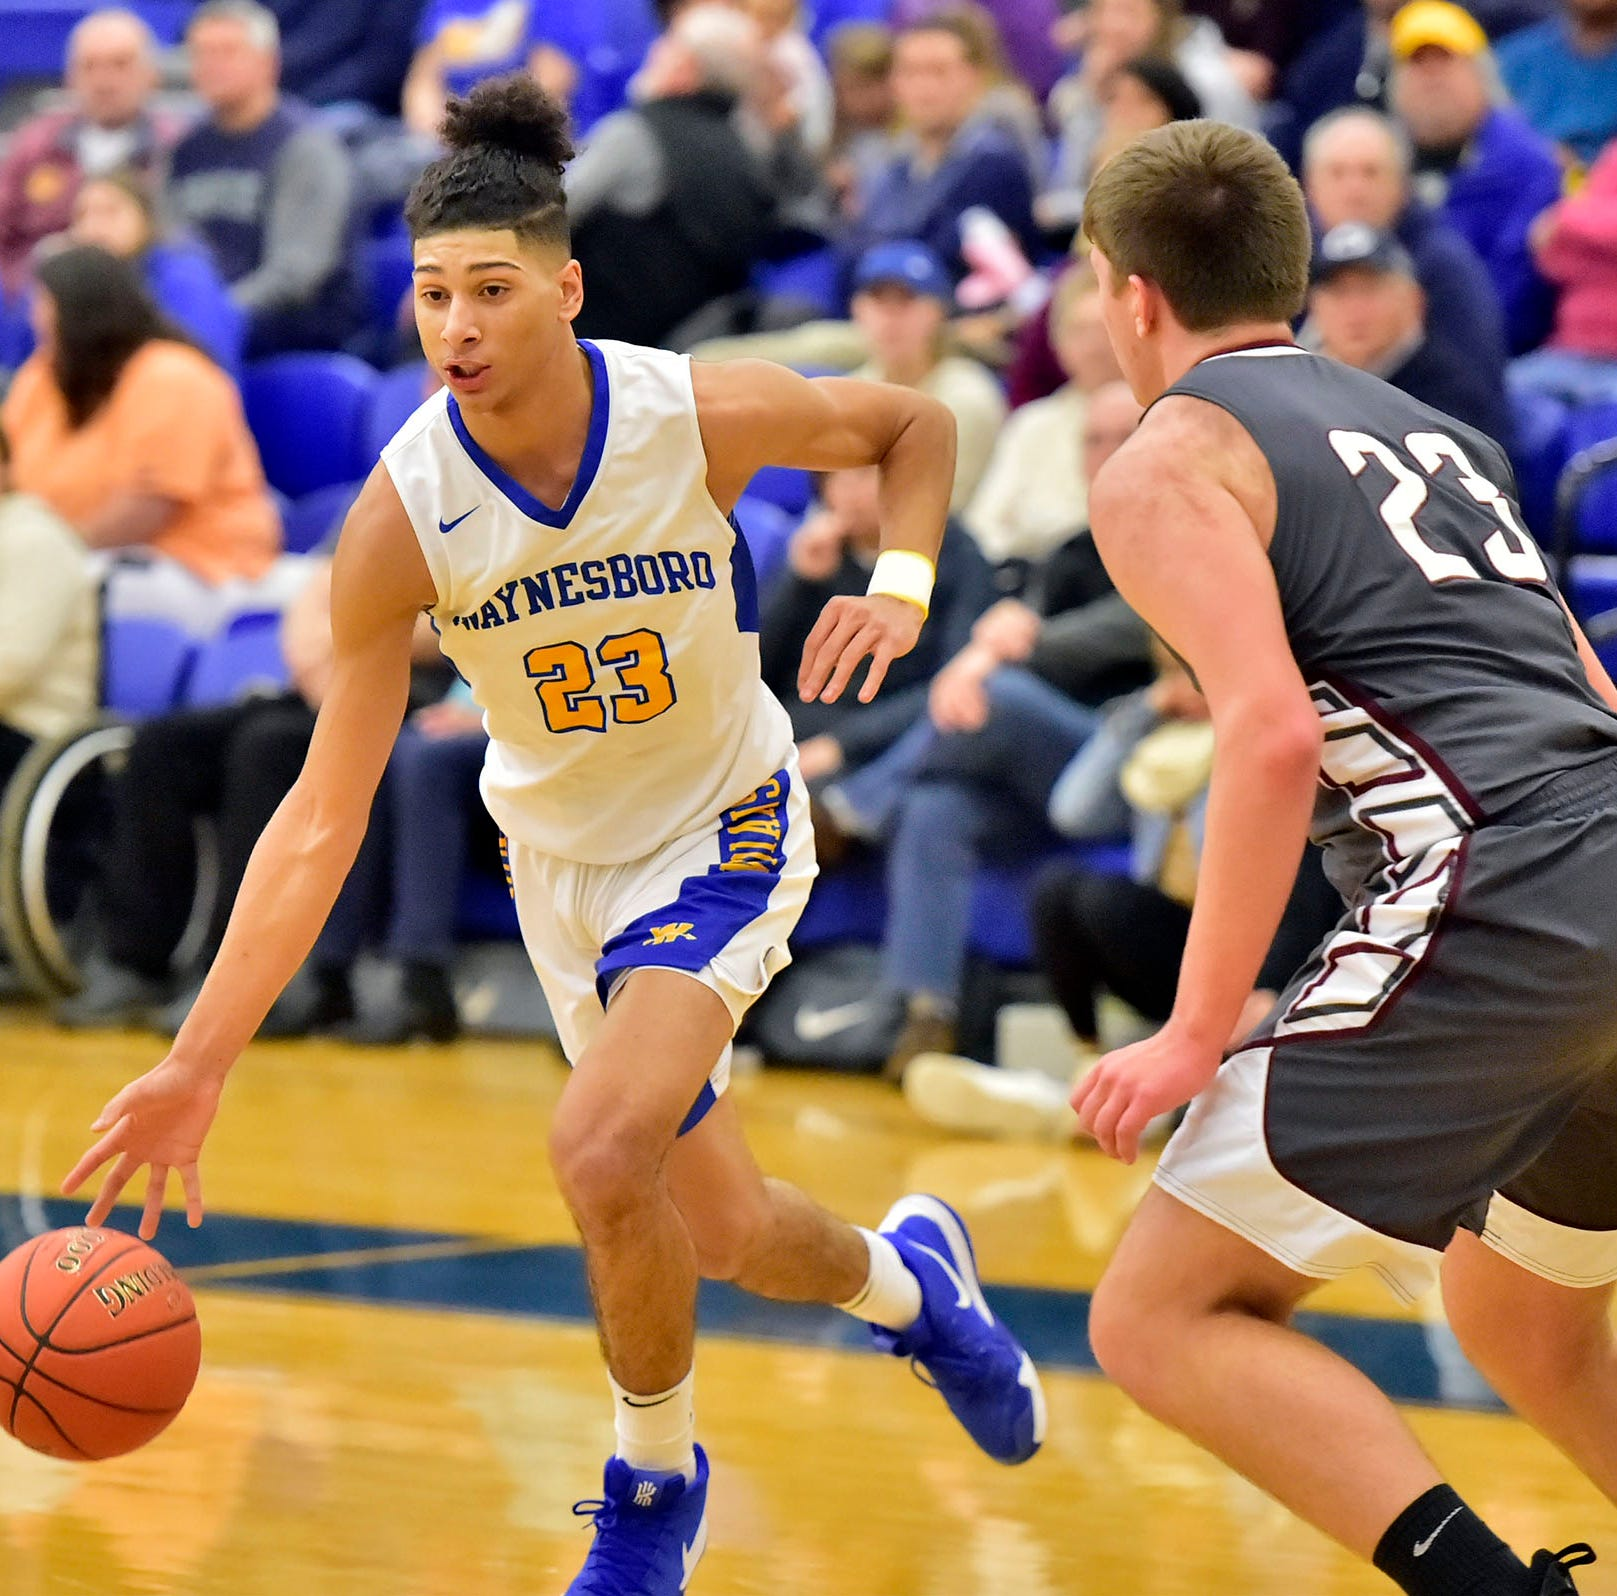 Waynesboro, Shippensburg cope with District playoff heartbreak